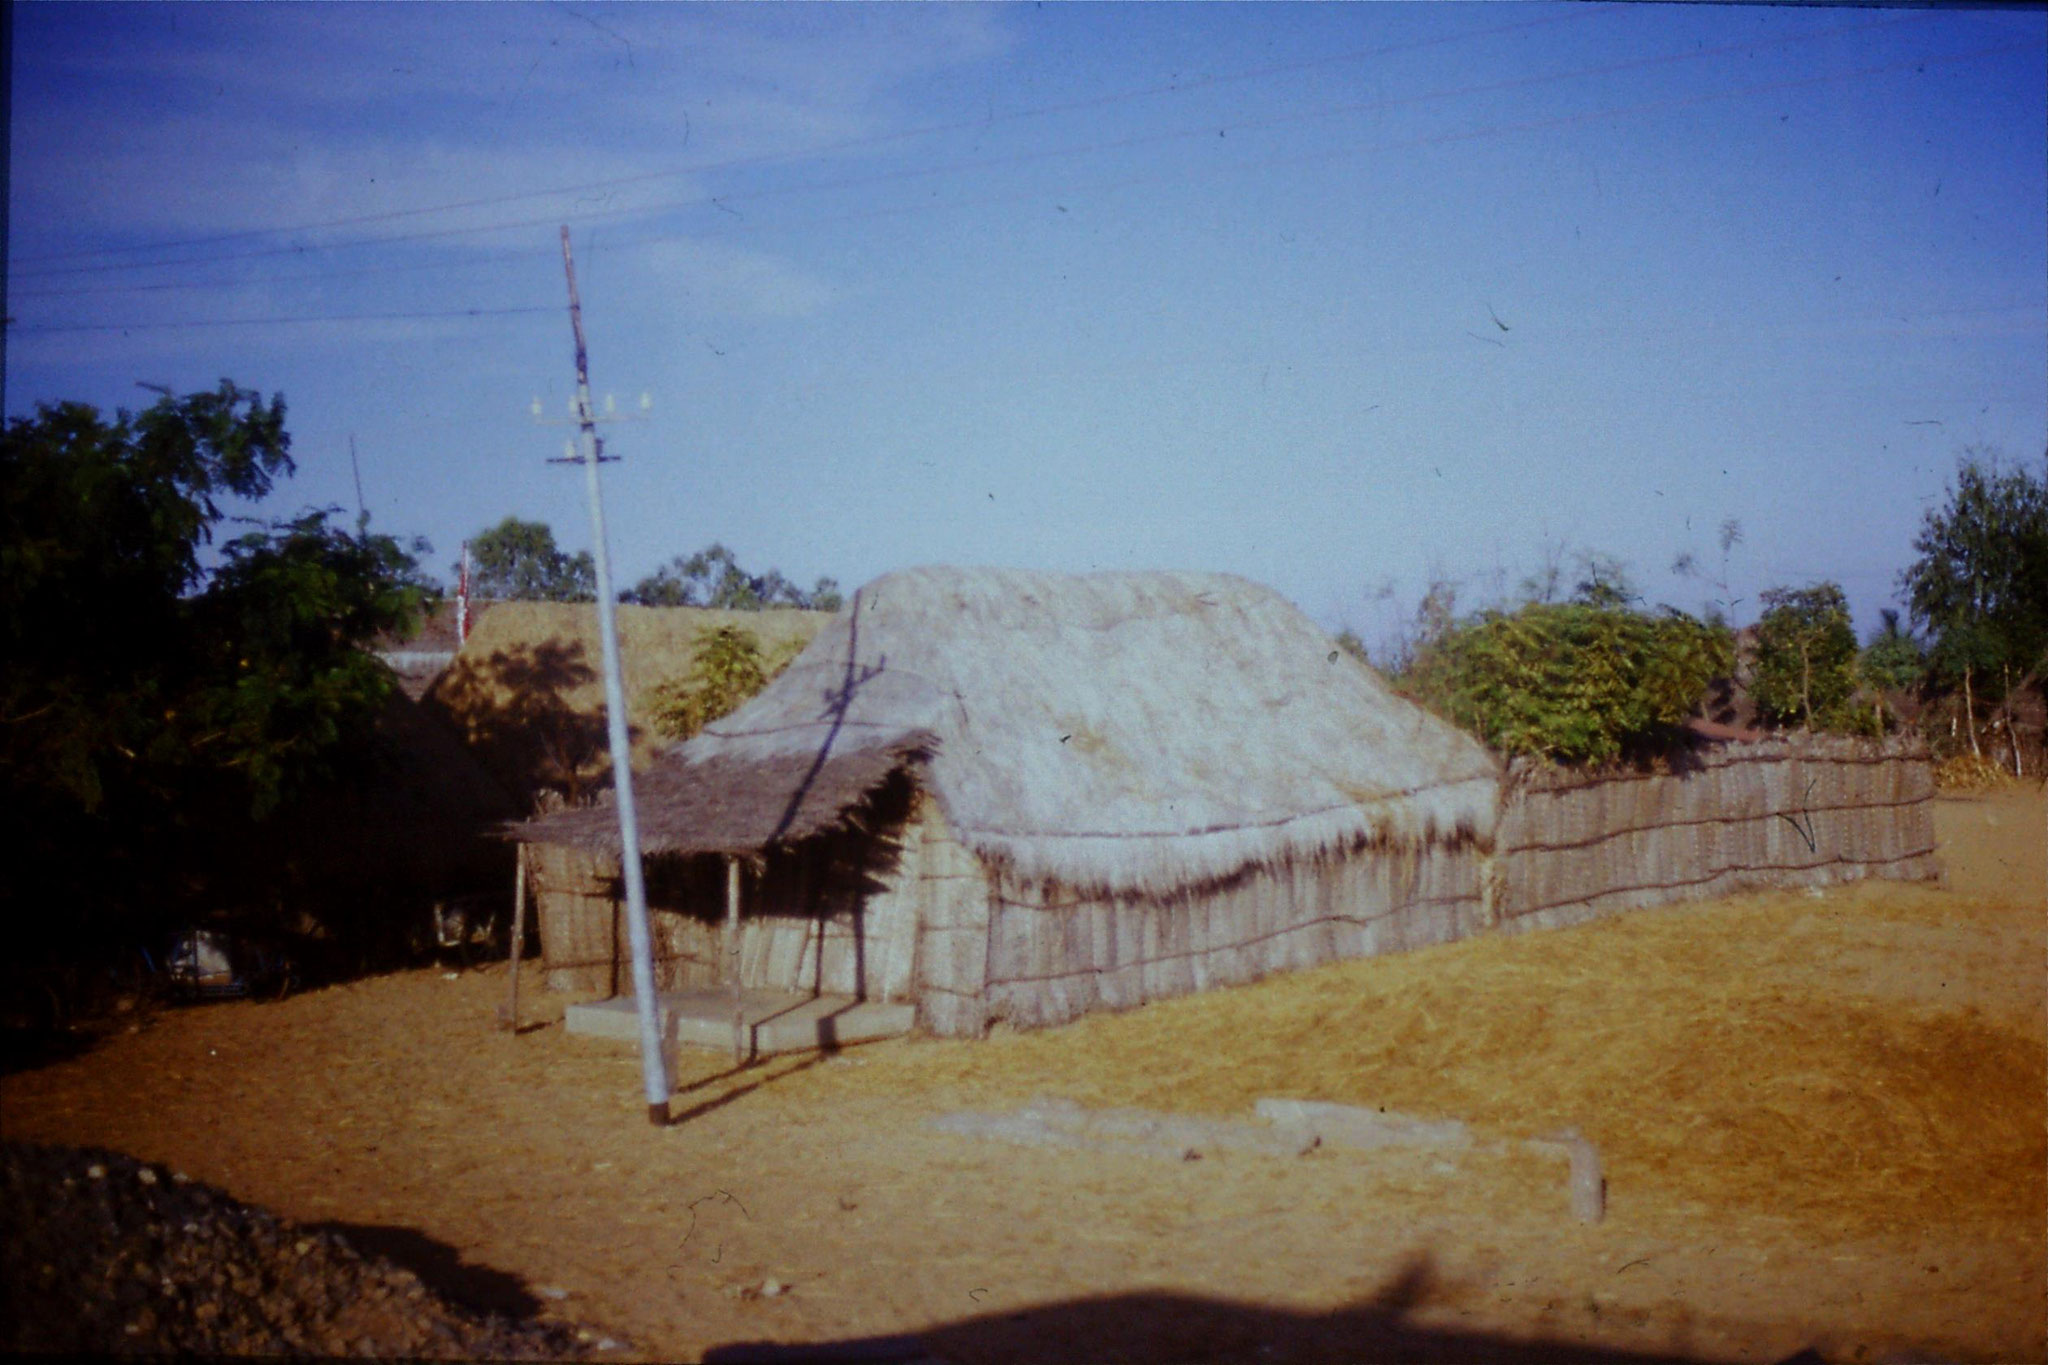 19/1/1990: 25: on road south of Madras, typical thatched house